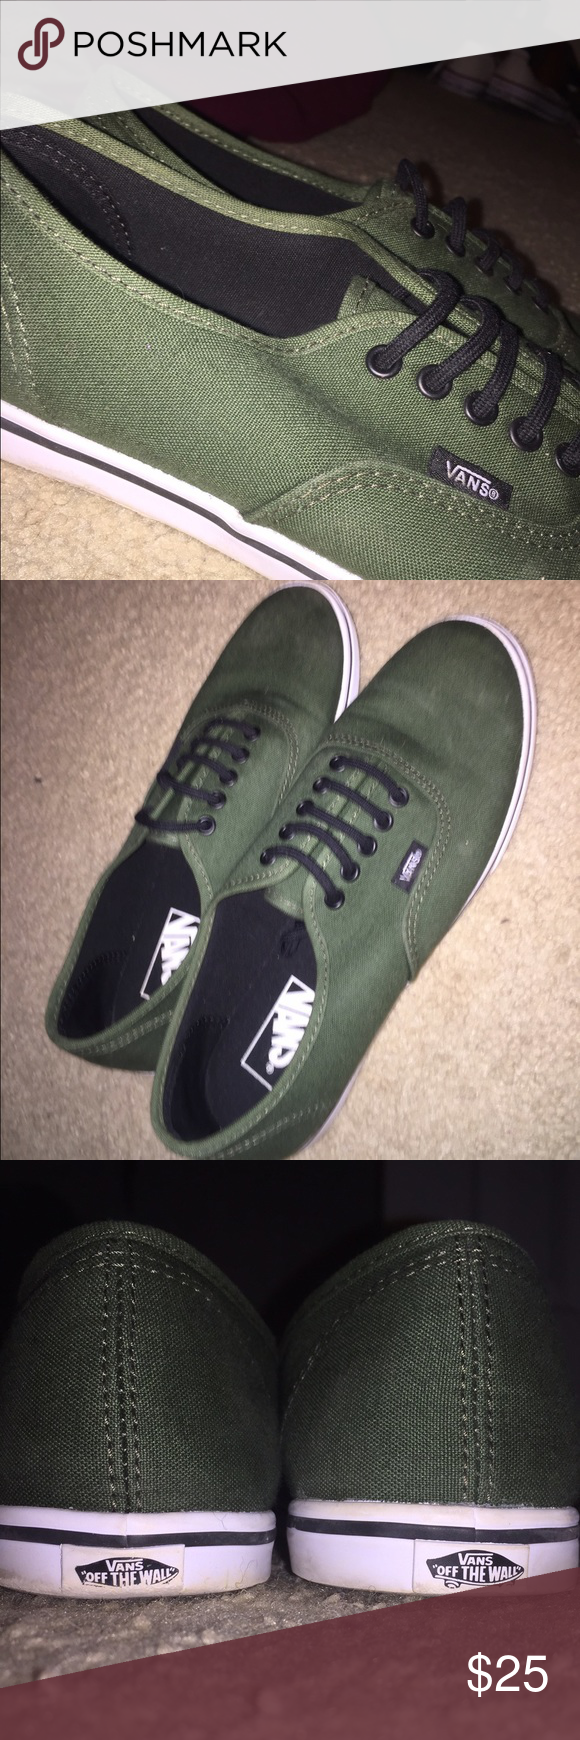 Army Green Vans!! Barley worn!! Very cute and in great condition!! Vans Shoes Sneakers